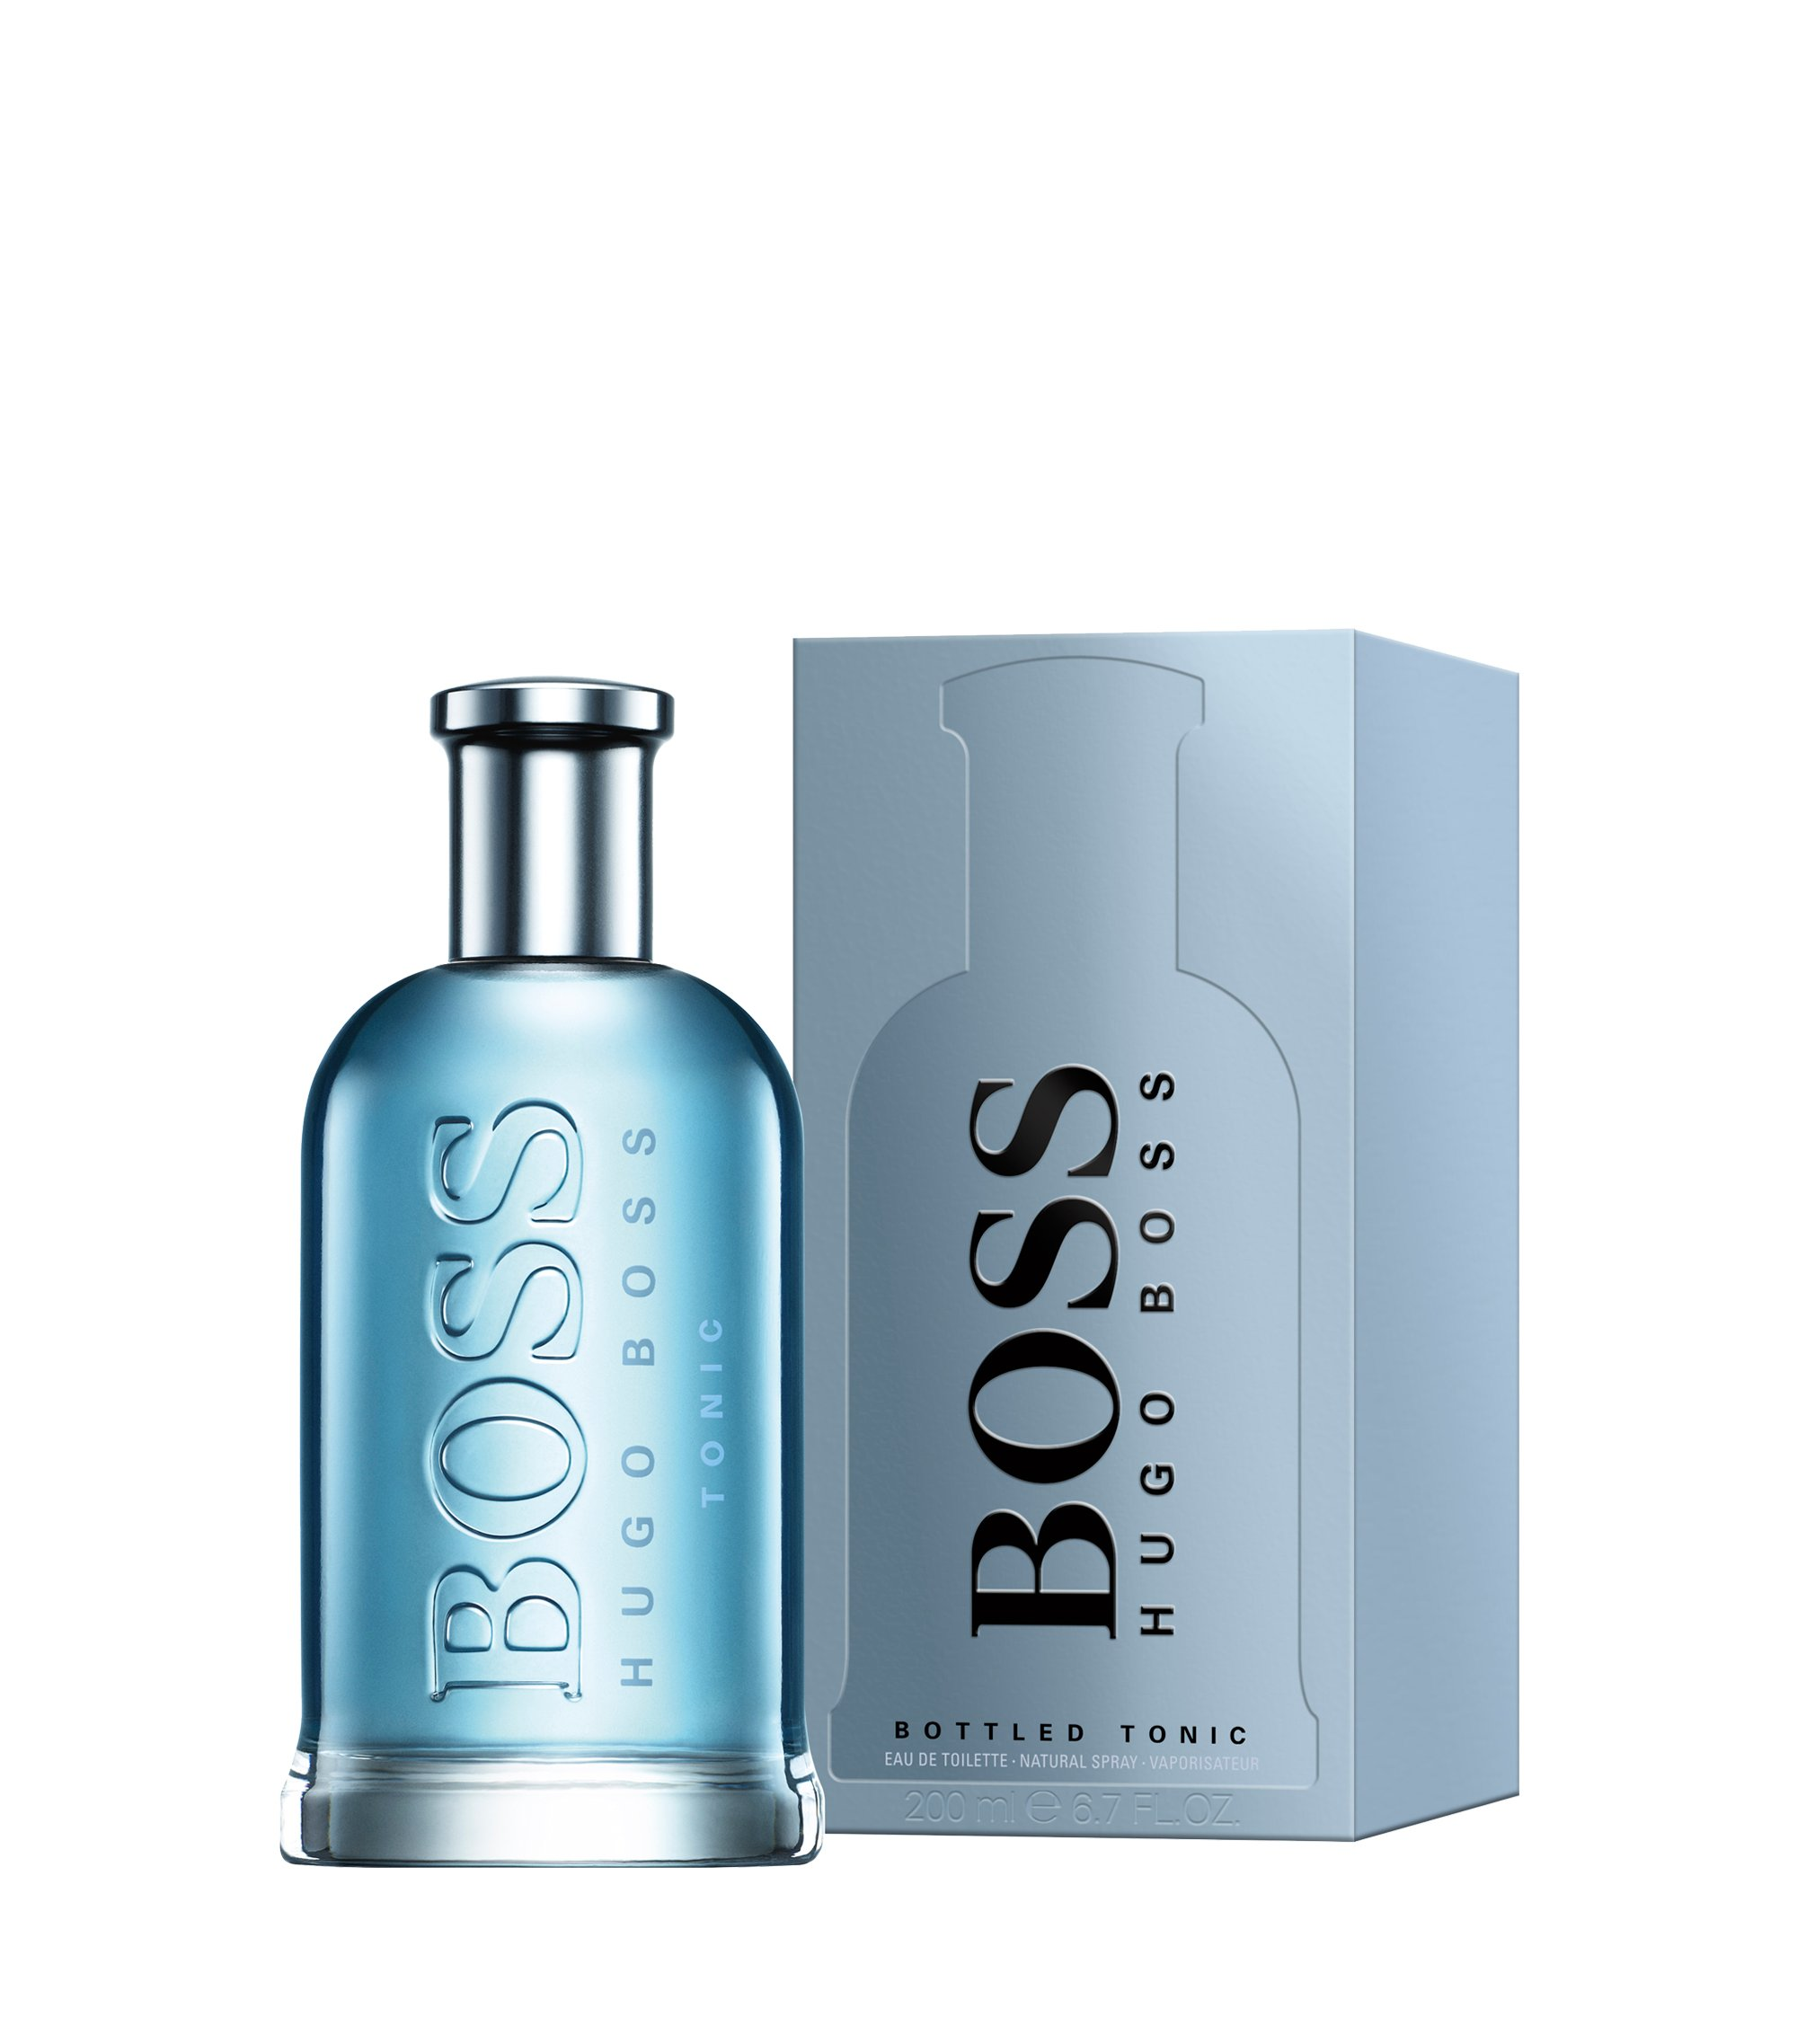 BOSS Bottled Tonic eau de toilette 200ml, Assorted-Pre-Pack